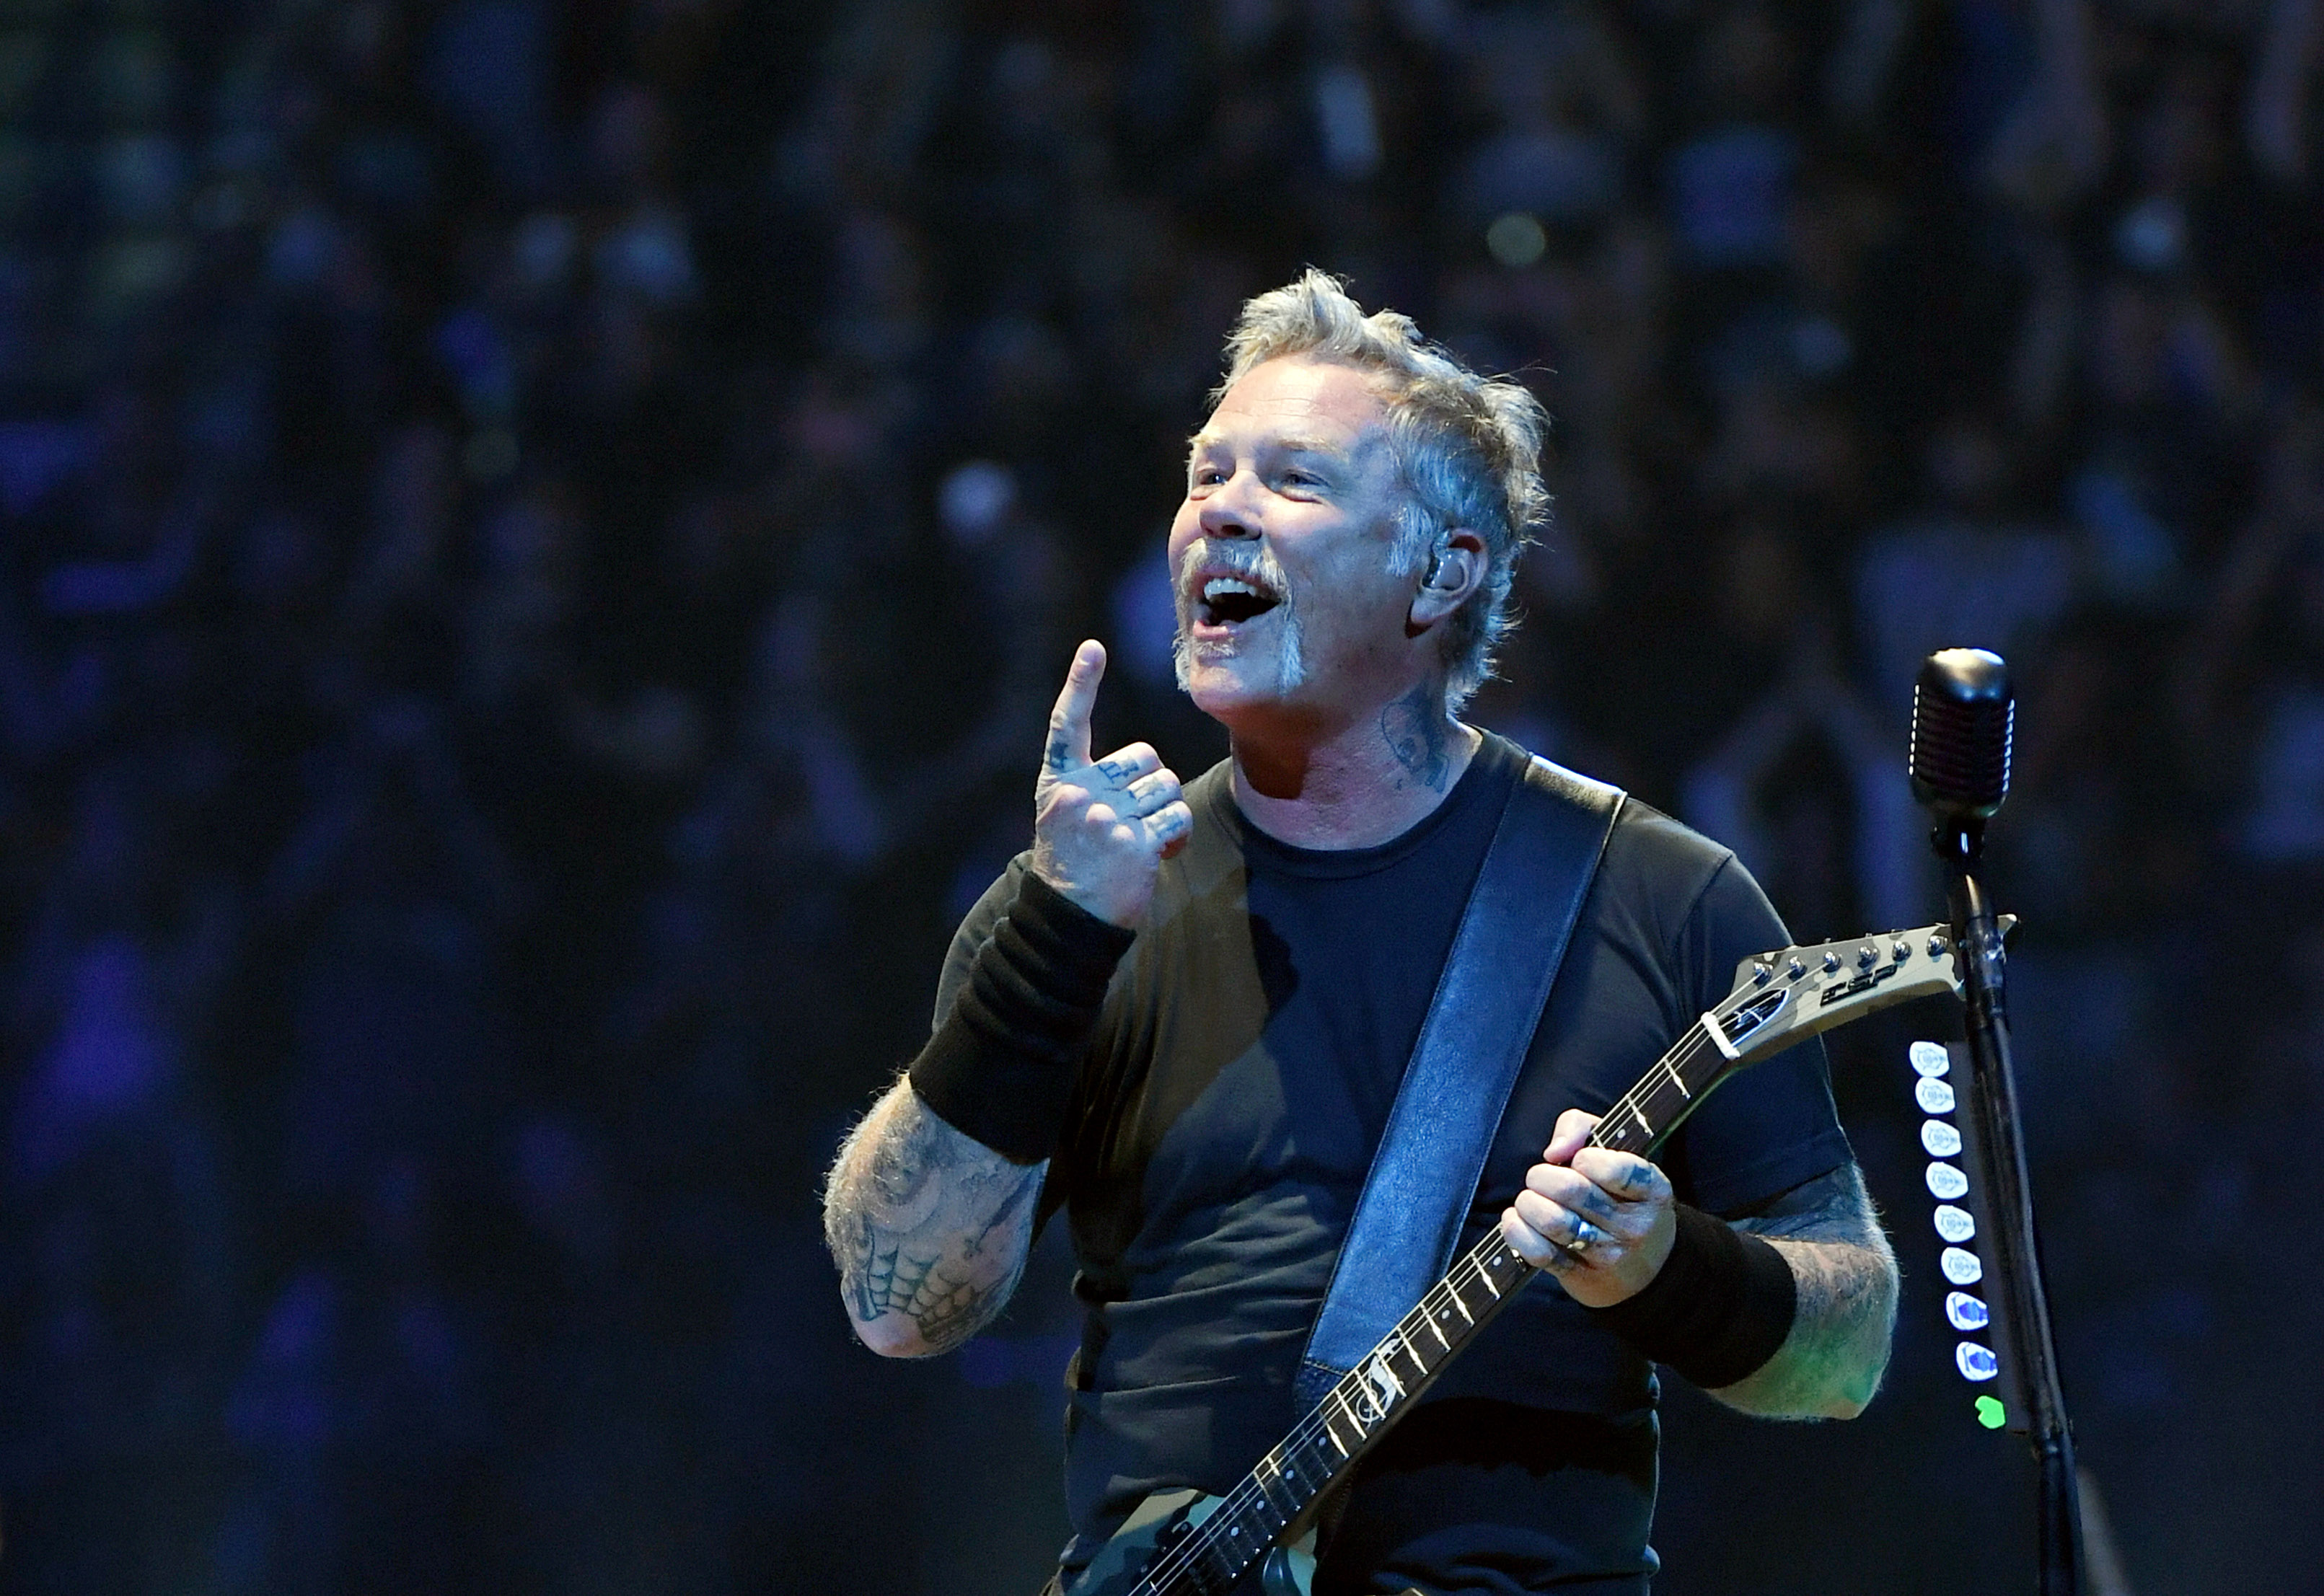 13 Metallica lyrics to celebrate James Hetfield's lyrical genius on his birthday